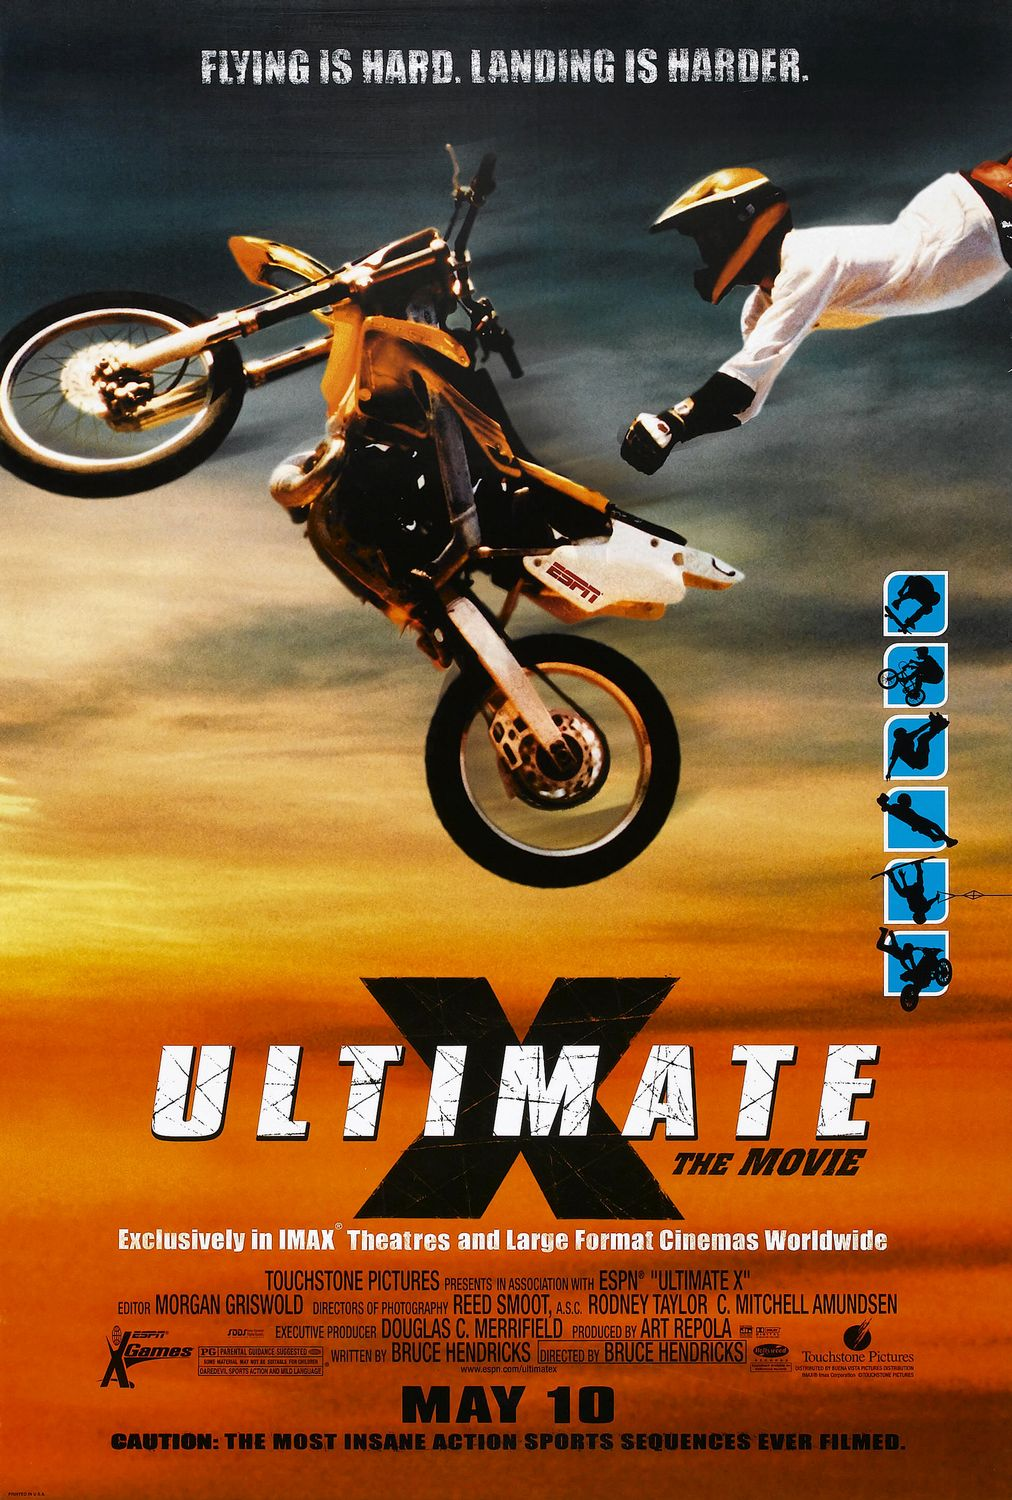 ultimate x film affiche disney poster touchstone